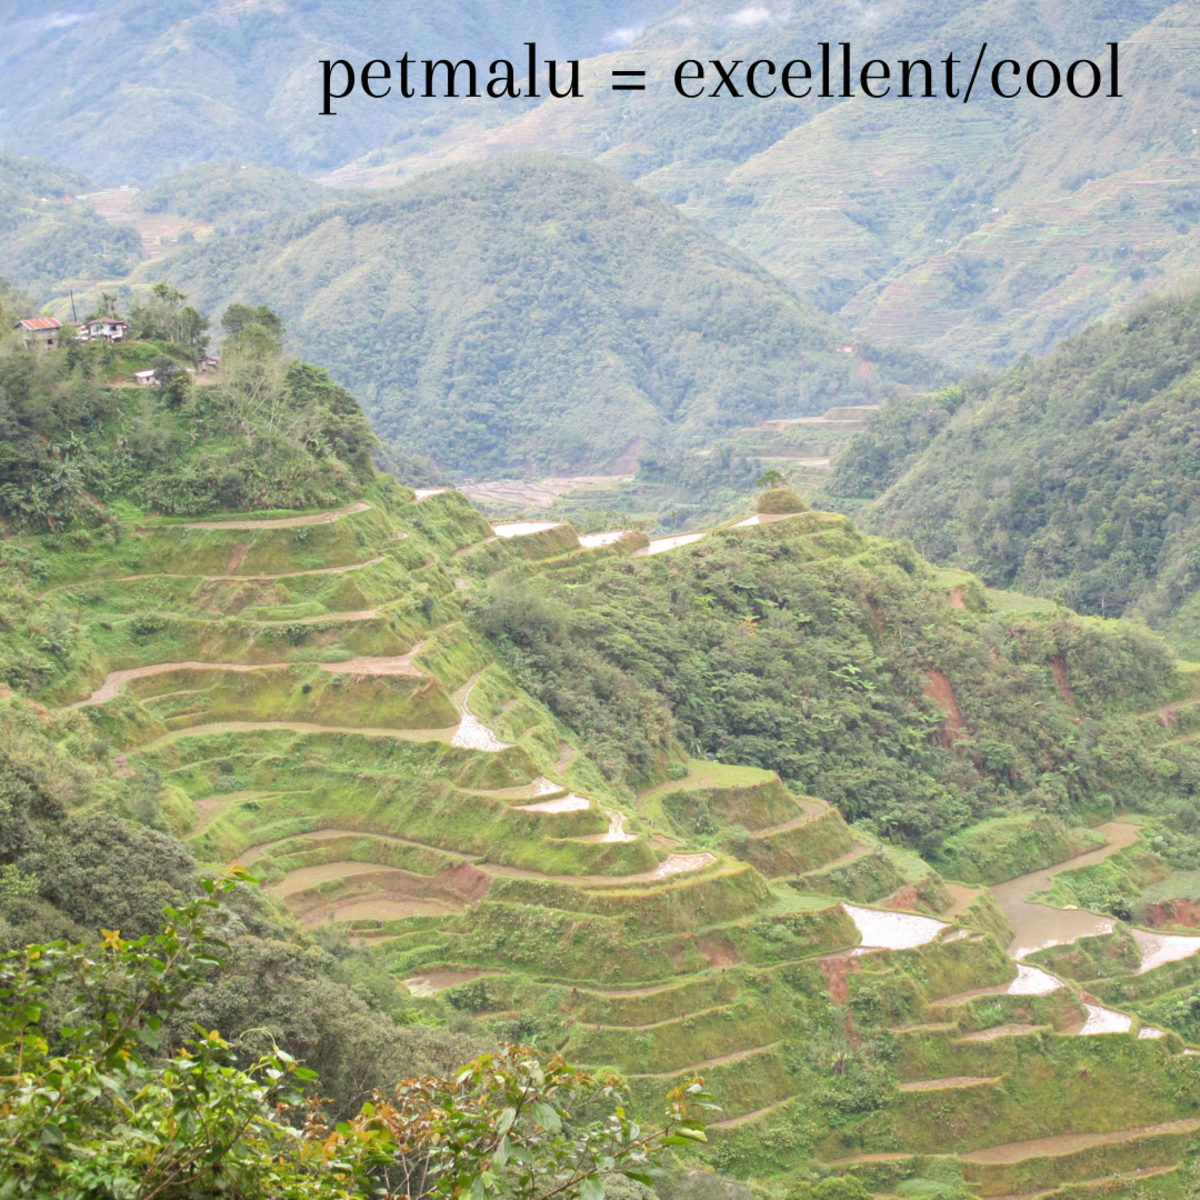 """""""Petmalu"""" is a Tagalog slang word that translates to """"extreme, exceptional, cool, excellent, or something extraordinary,"""" such as these magnificent rice fields."""